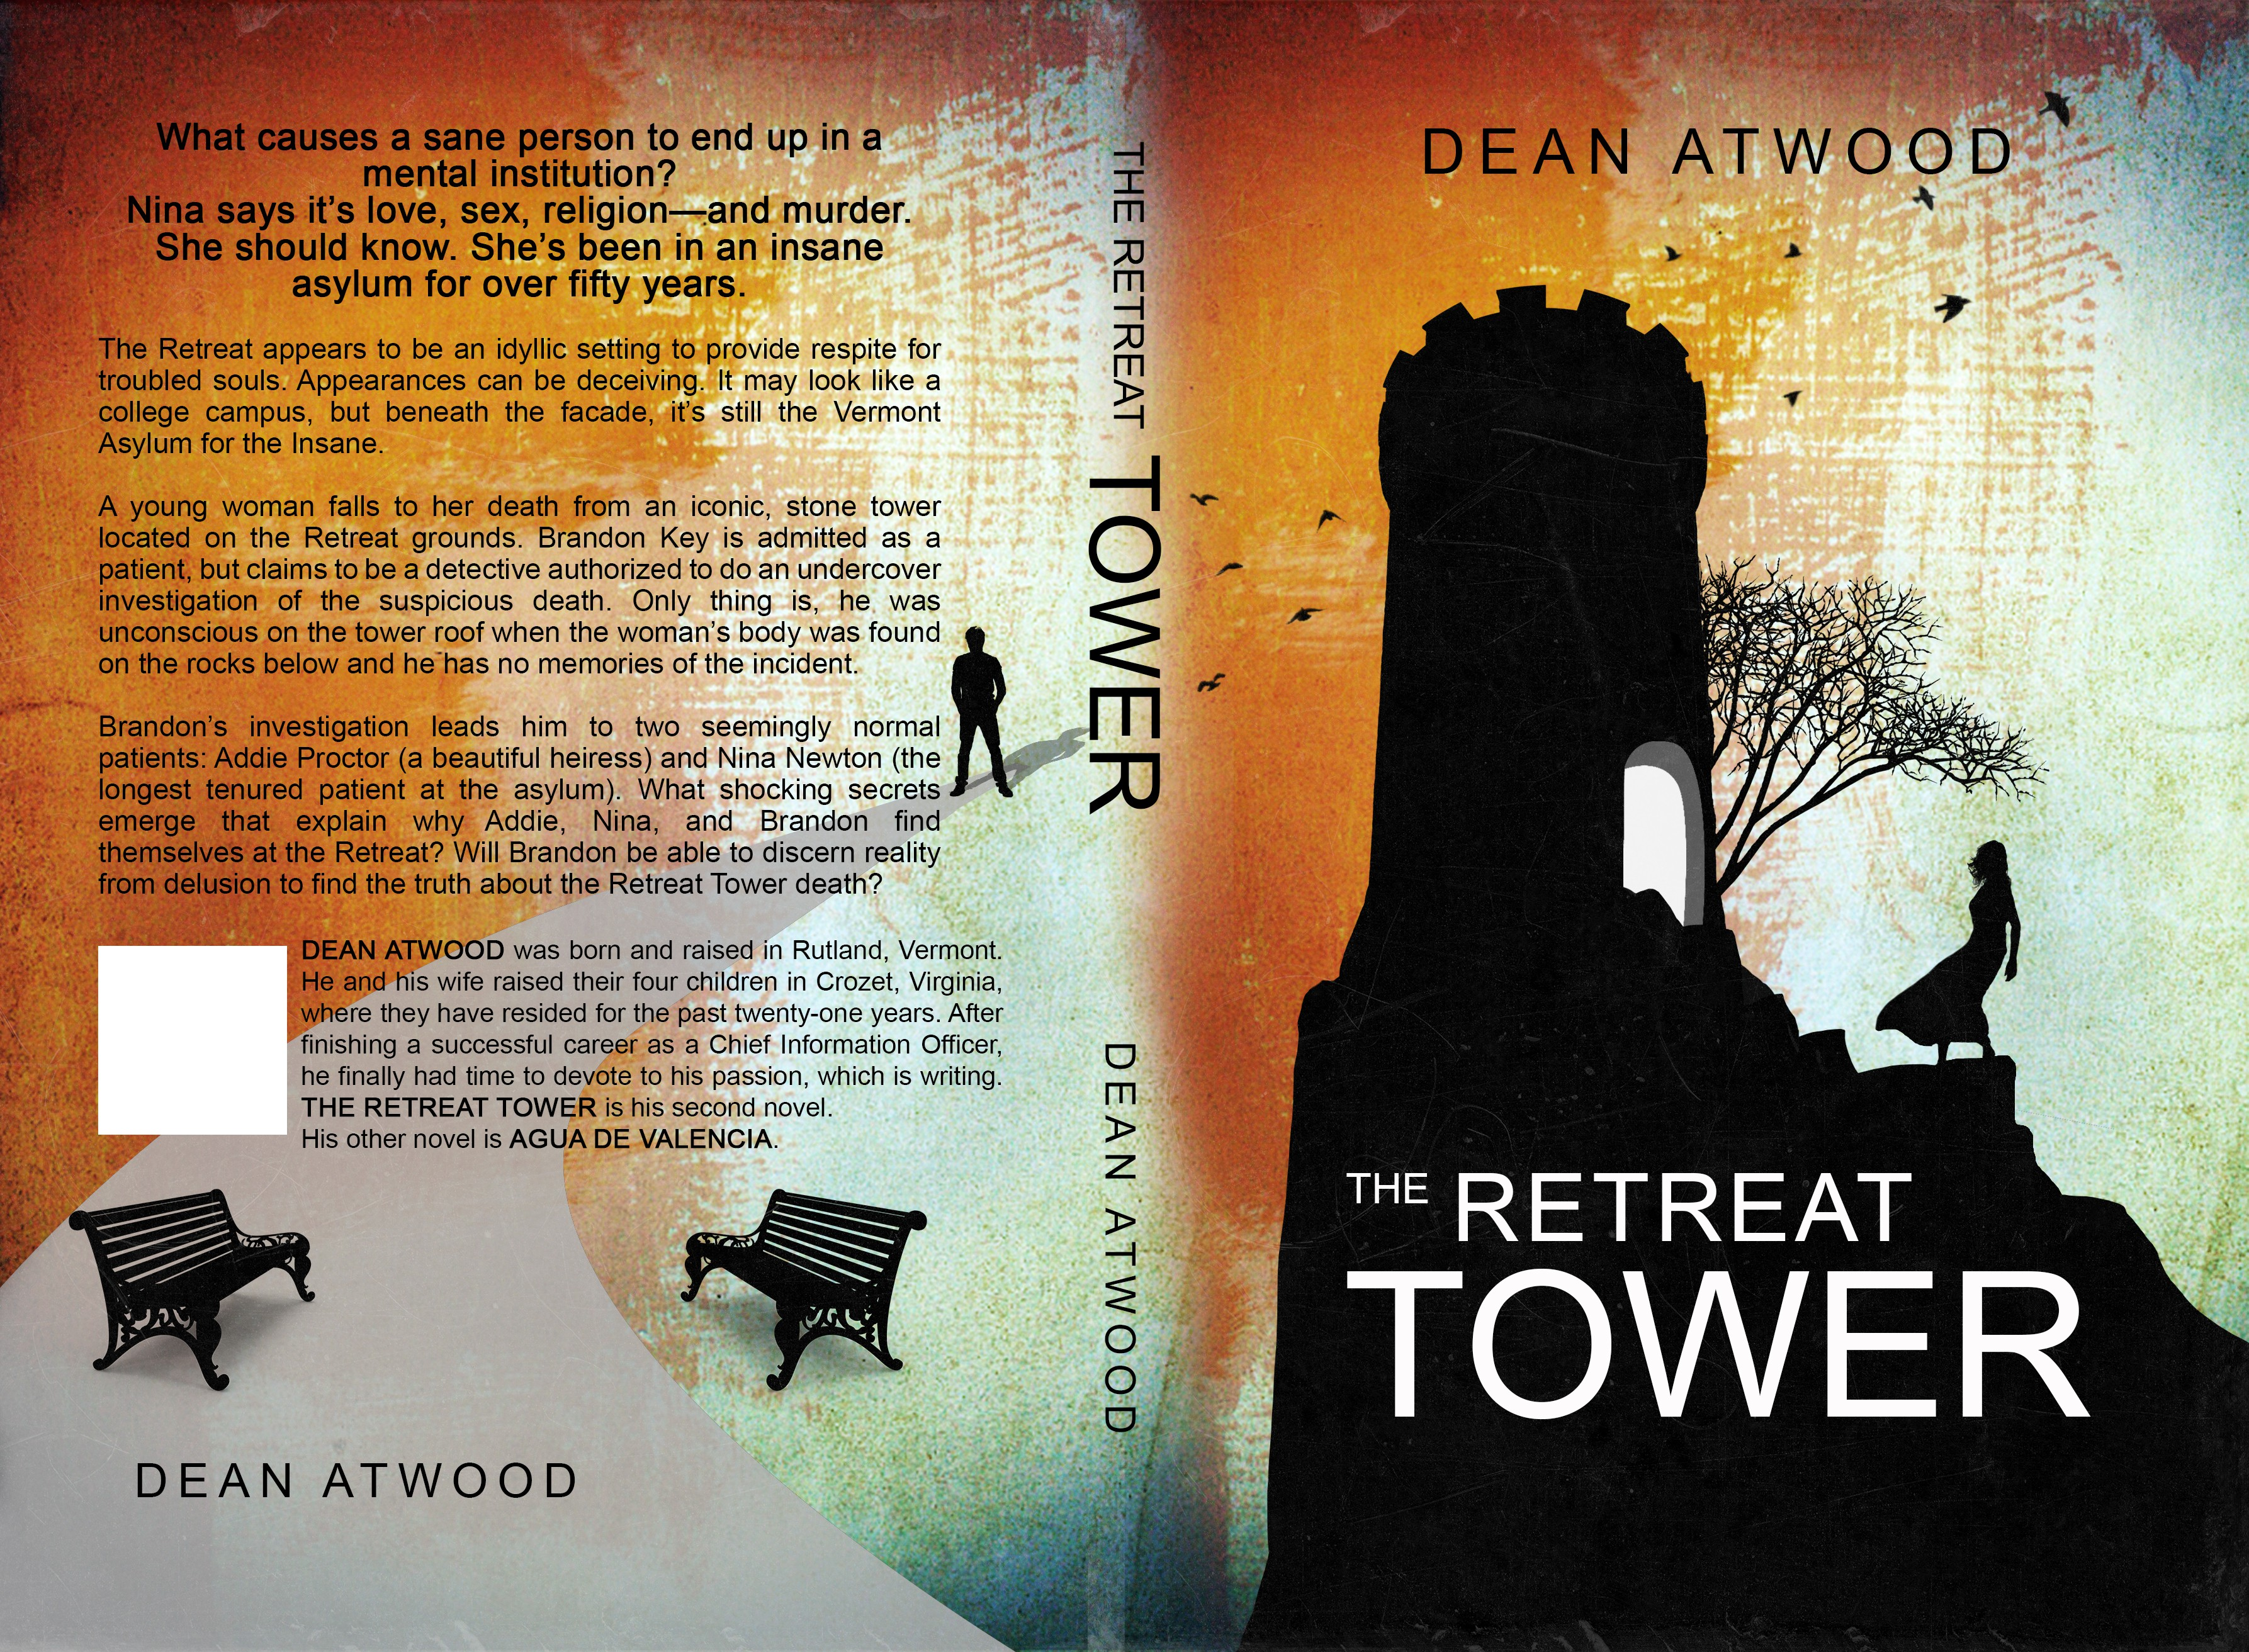 Design a cover for THE RETREAT TOWER novel